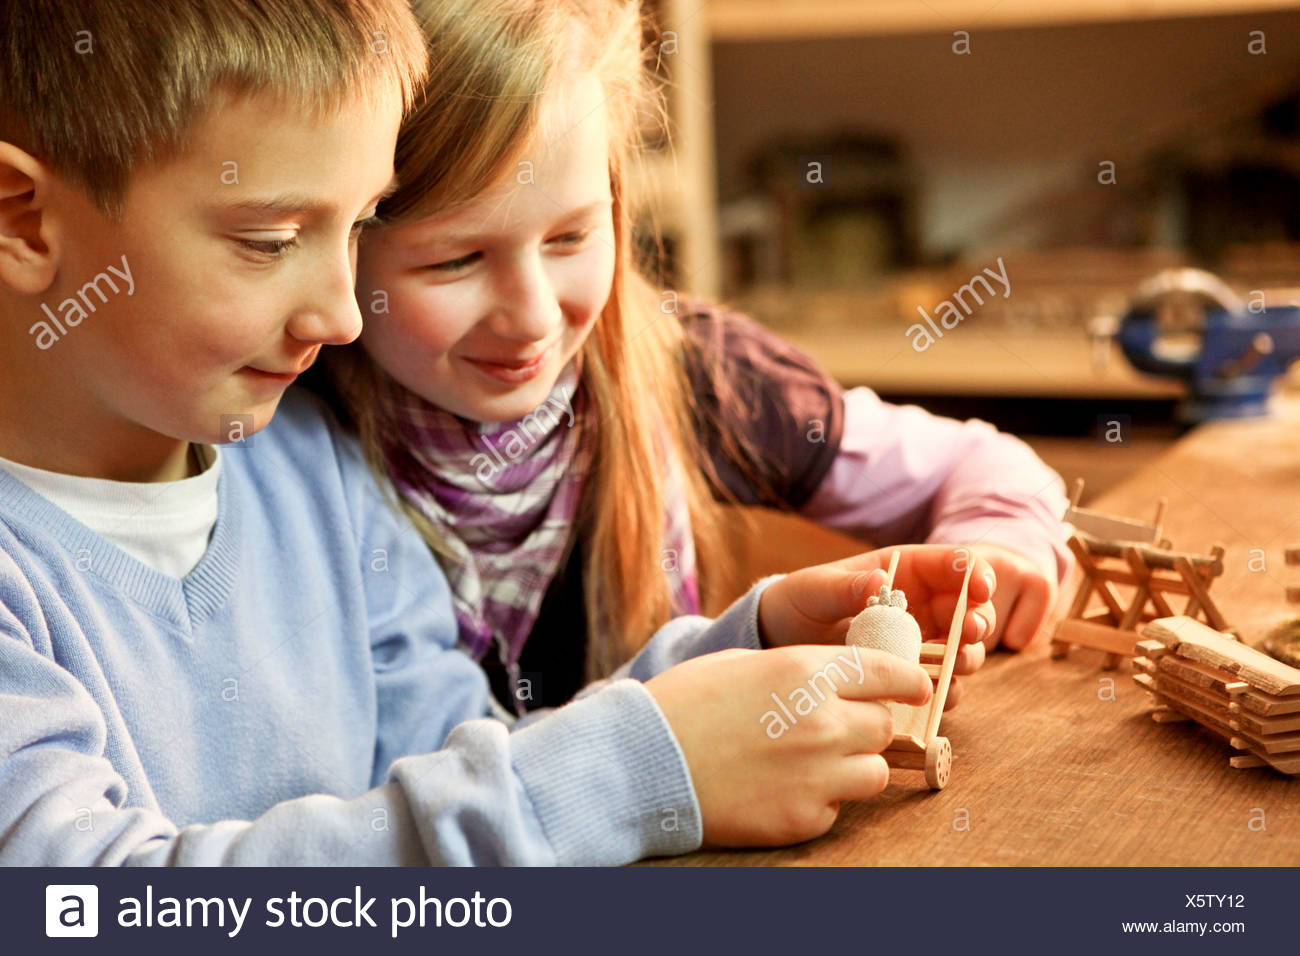 Young boy and girl making wooden craft together - Stock Image